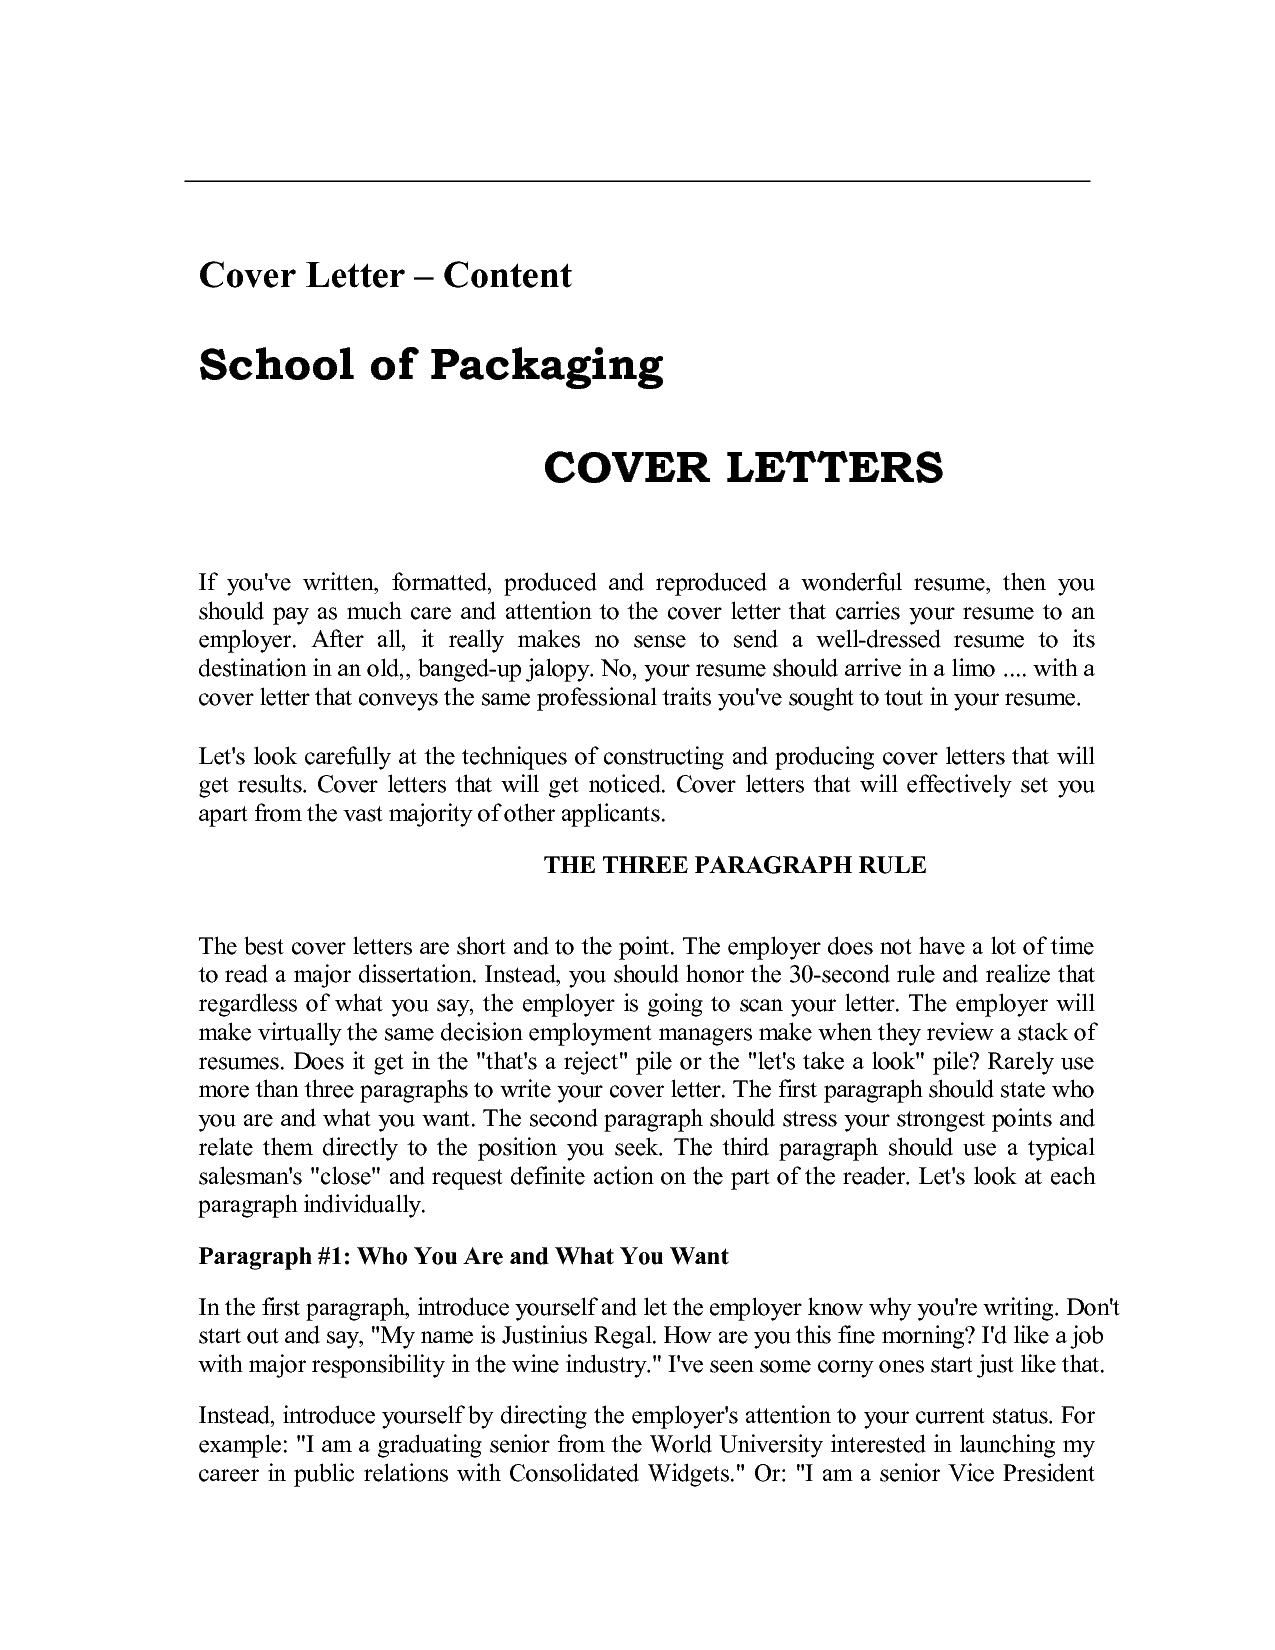 how to write cover letter for resume pdf